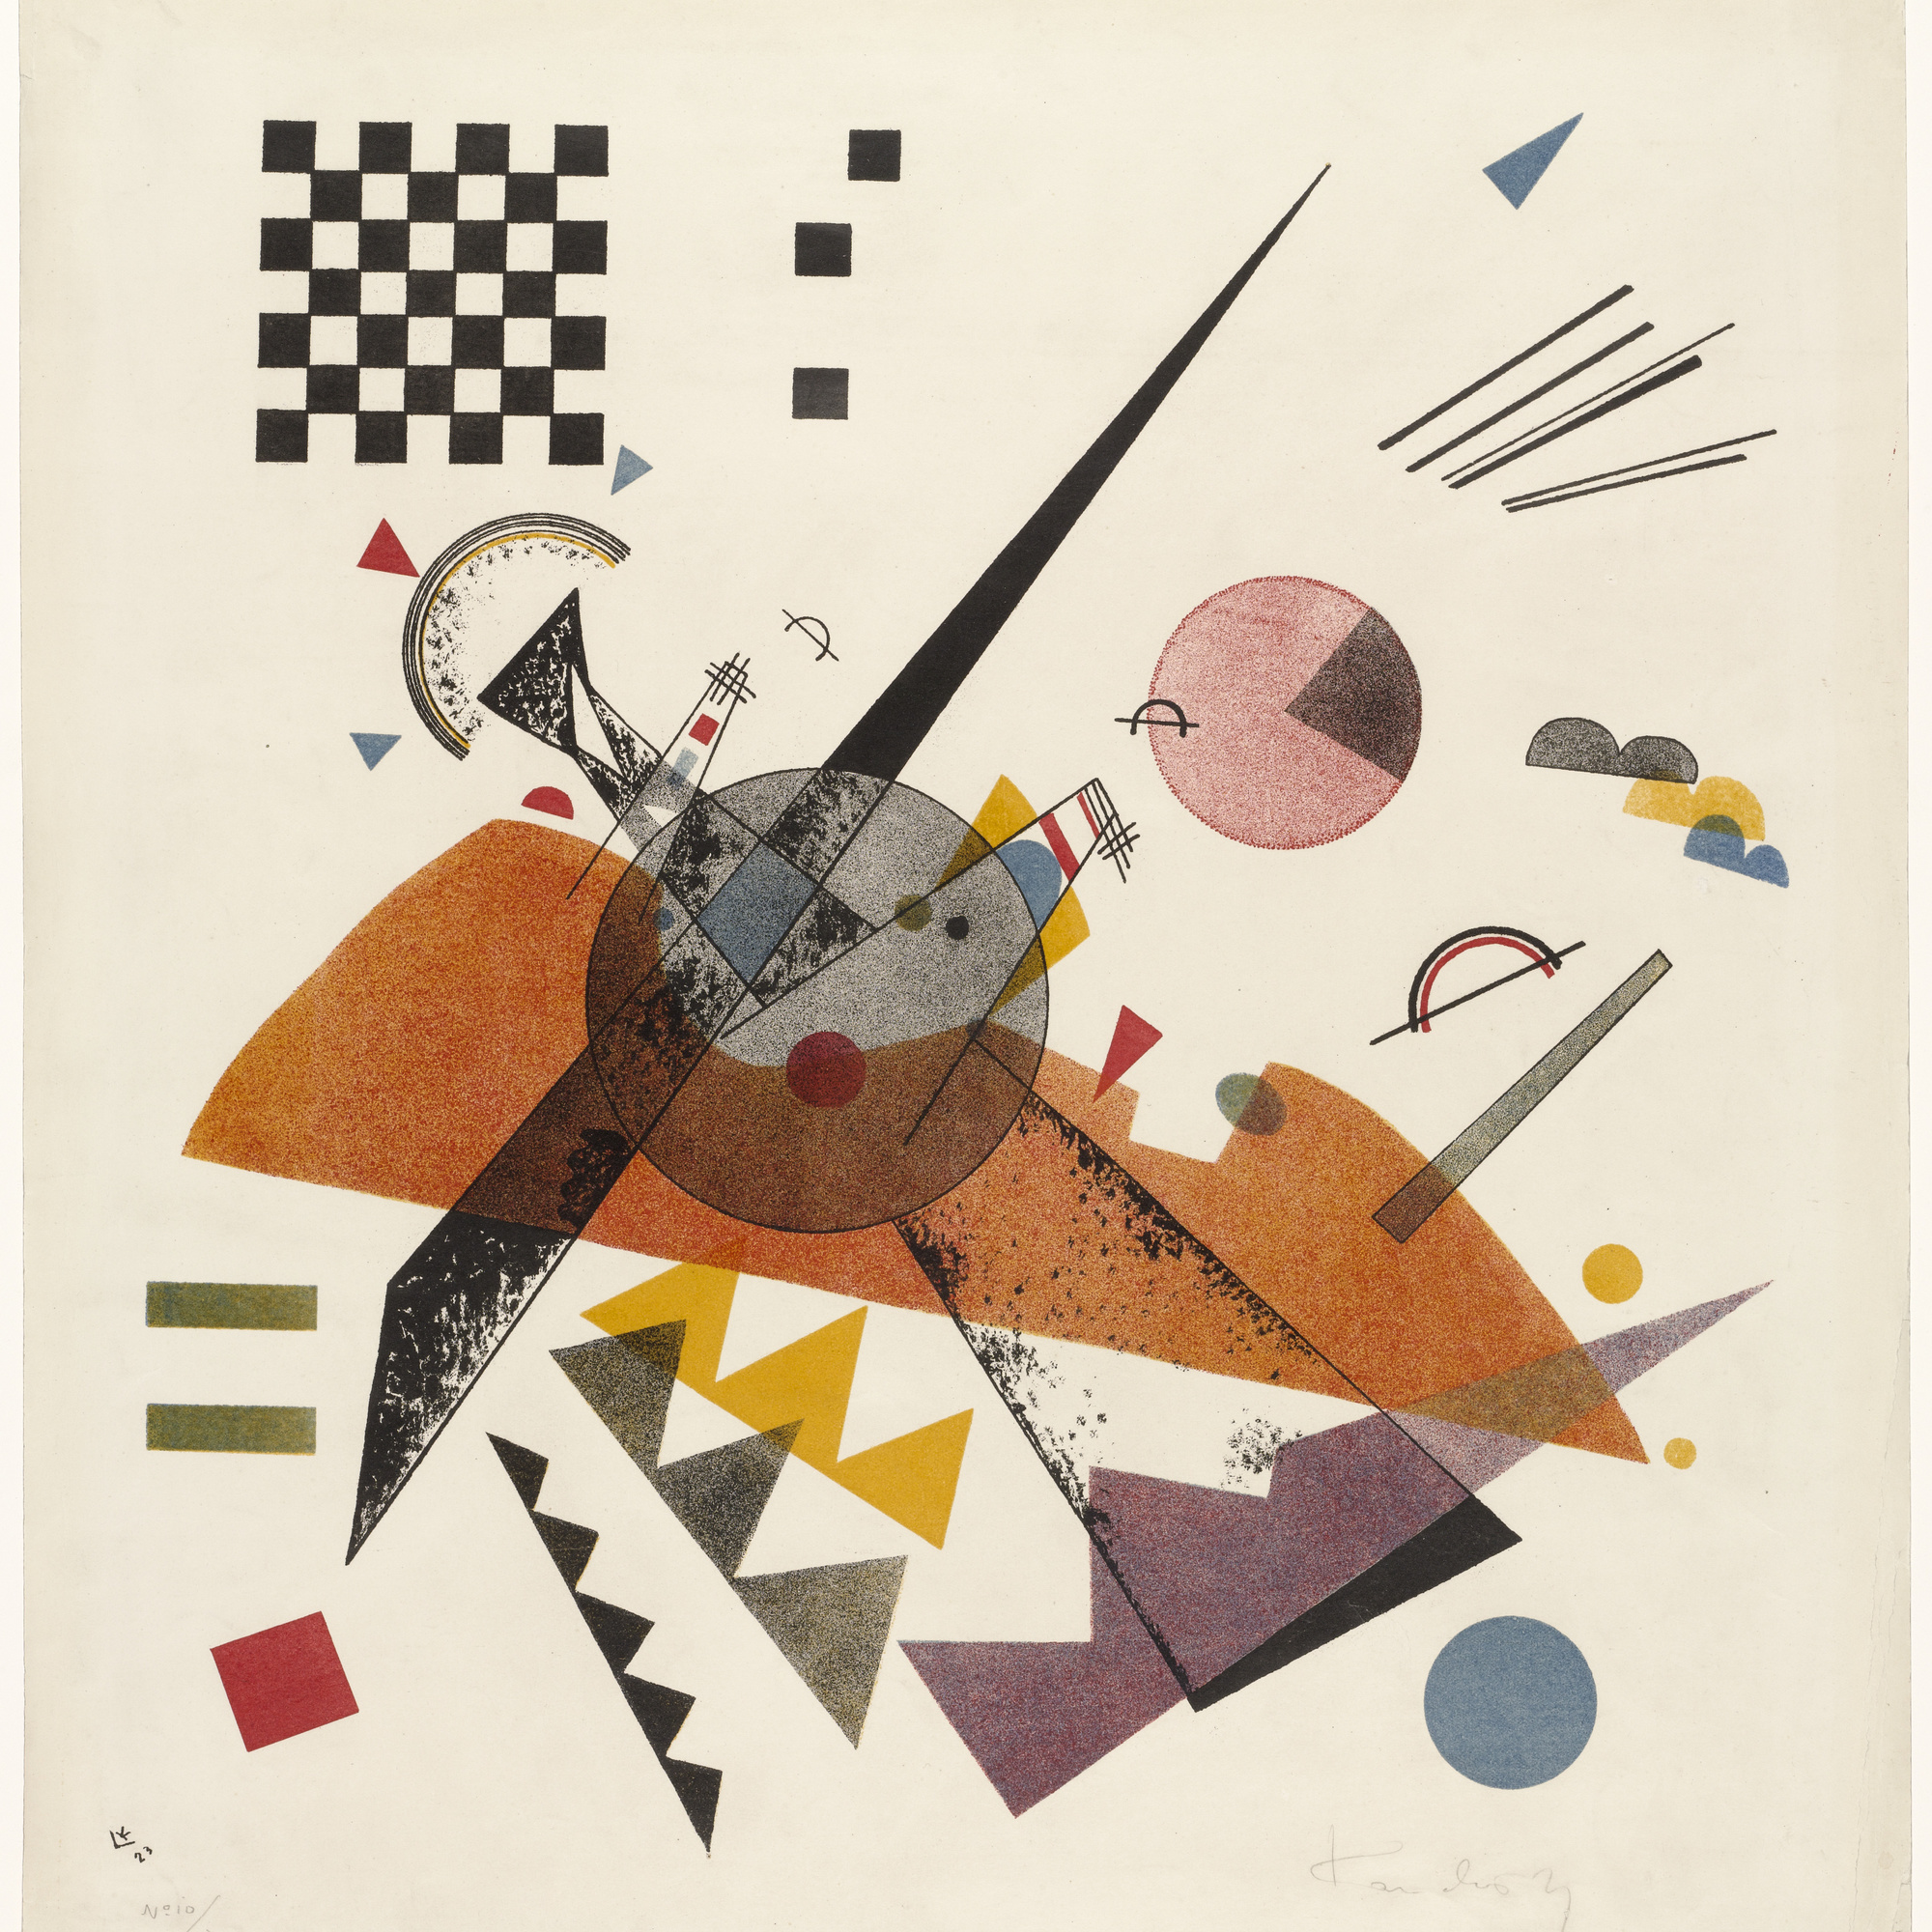 Vasily Kandinsky. Orange. 1923. Lithograph. Sheet: 19 × 17 7/16″ (48.2 × 44.3 cm). Publisher and printer: Staatliches Bauhaus, Weimar. Edition: 50. The Museum of Modern Art, New York. Purchase, 1949. © 2005 Artists RightsSociety (ARS), New York/ADAGP, Paris